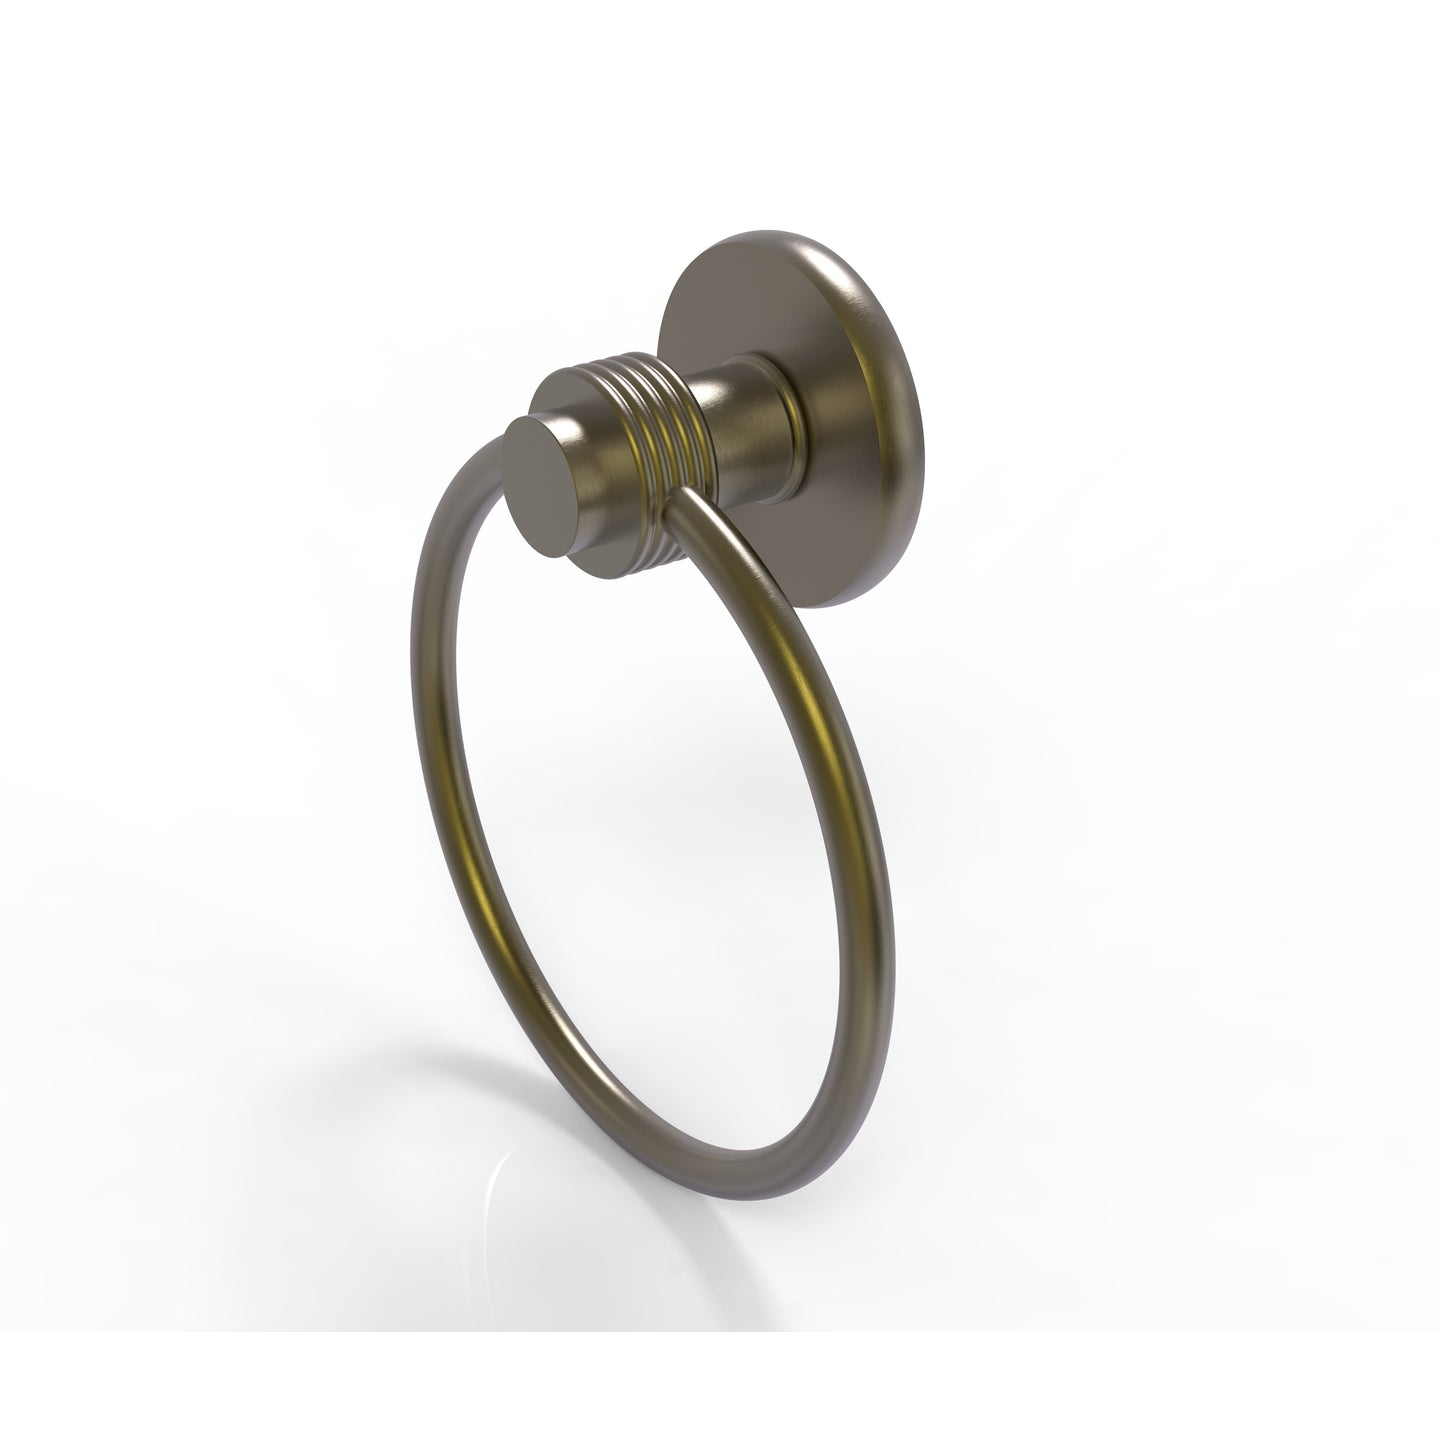 Allied Brass - Mercury Collection Towel Ring with Groovy Accent